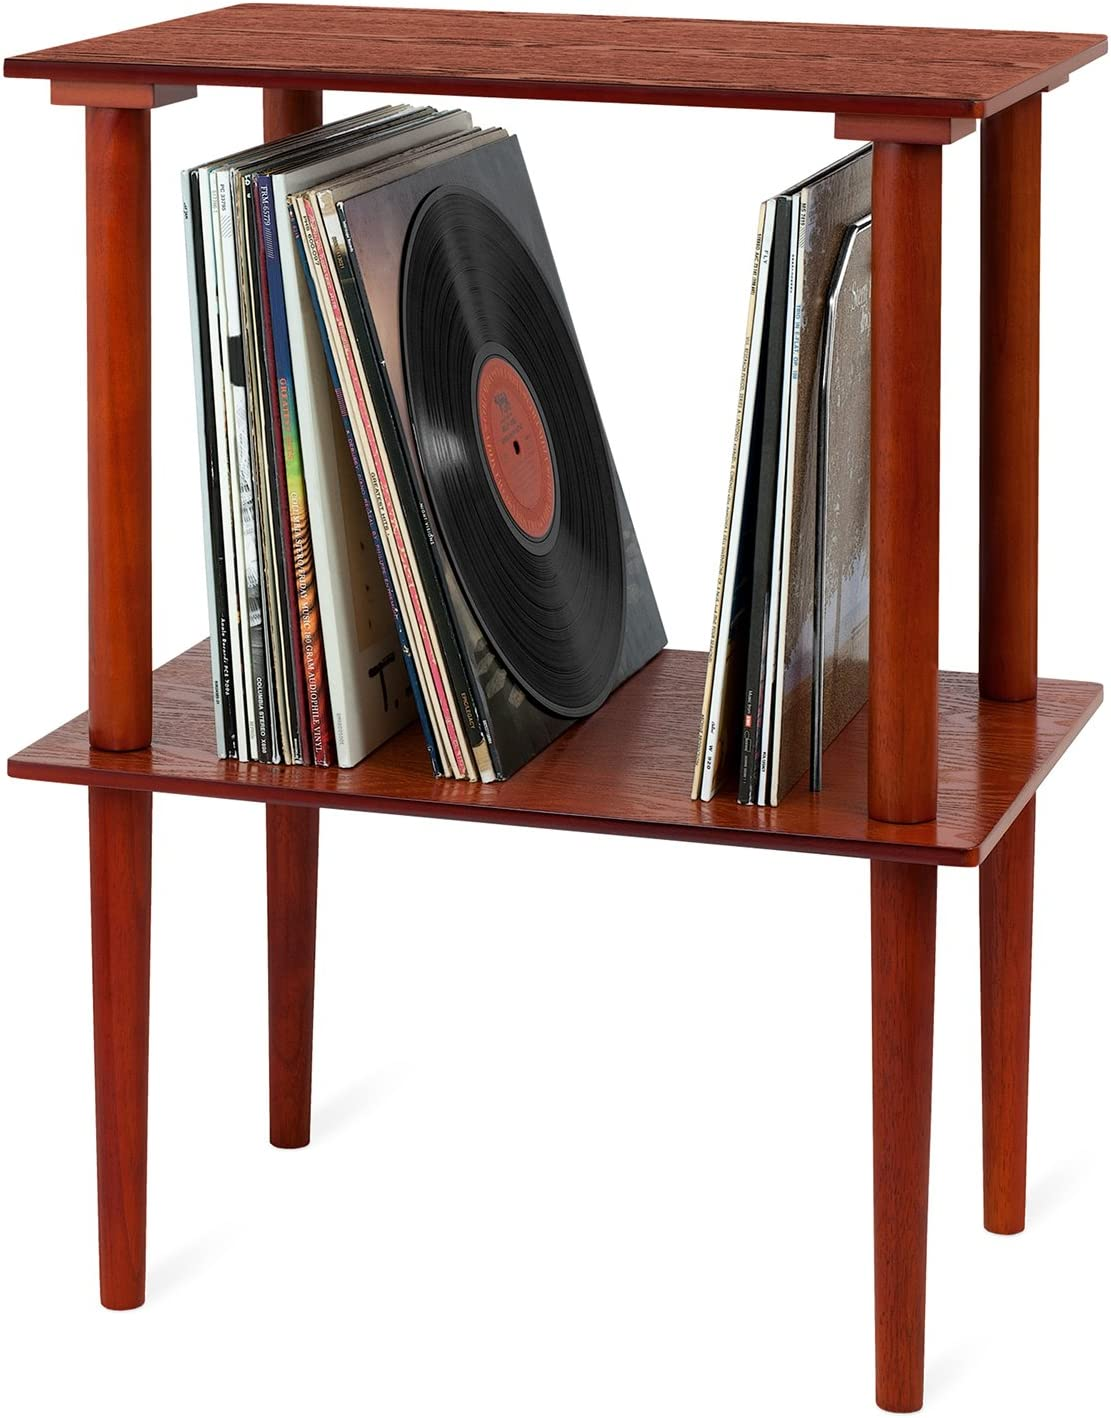 Victrola Wooden Stand for Wooden Music Centers with Record Holder Shelf Espresso